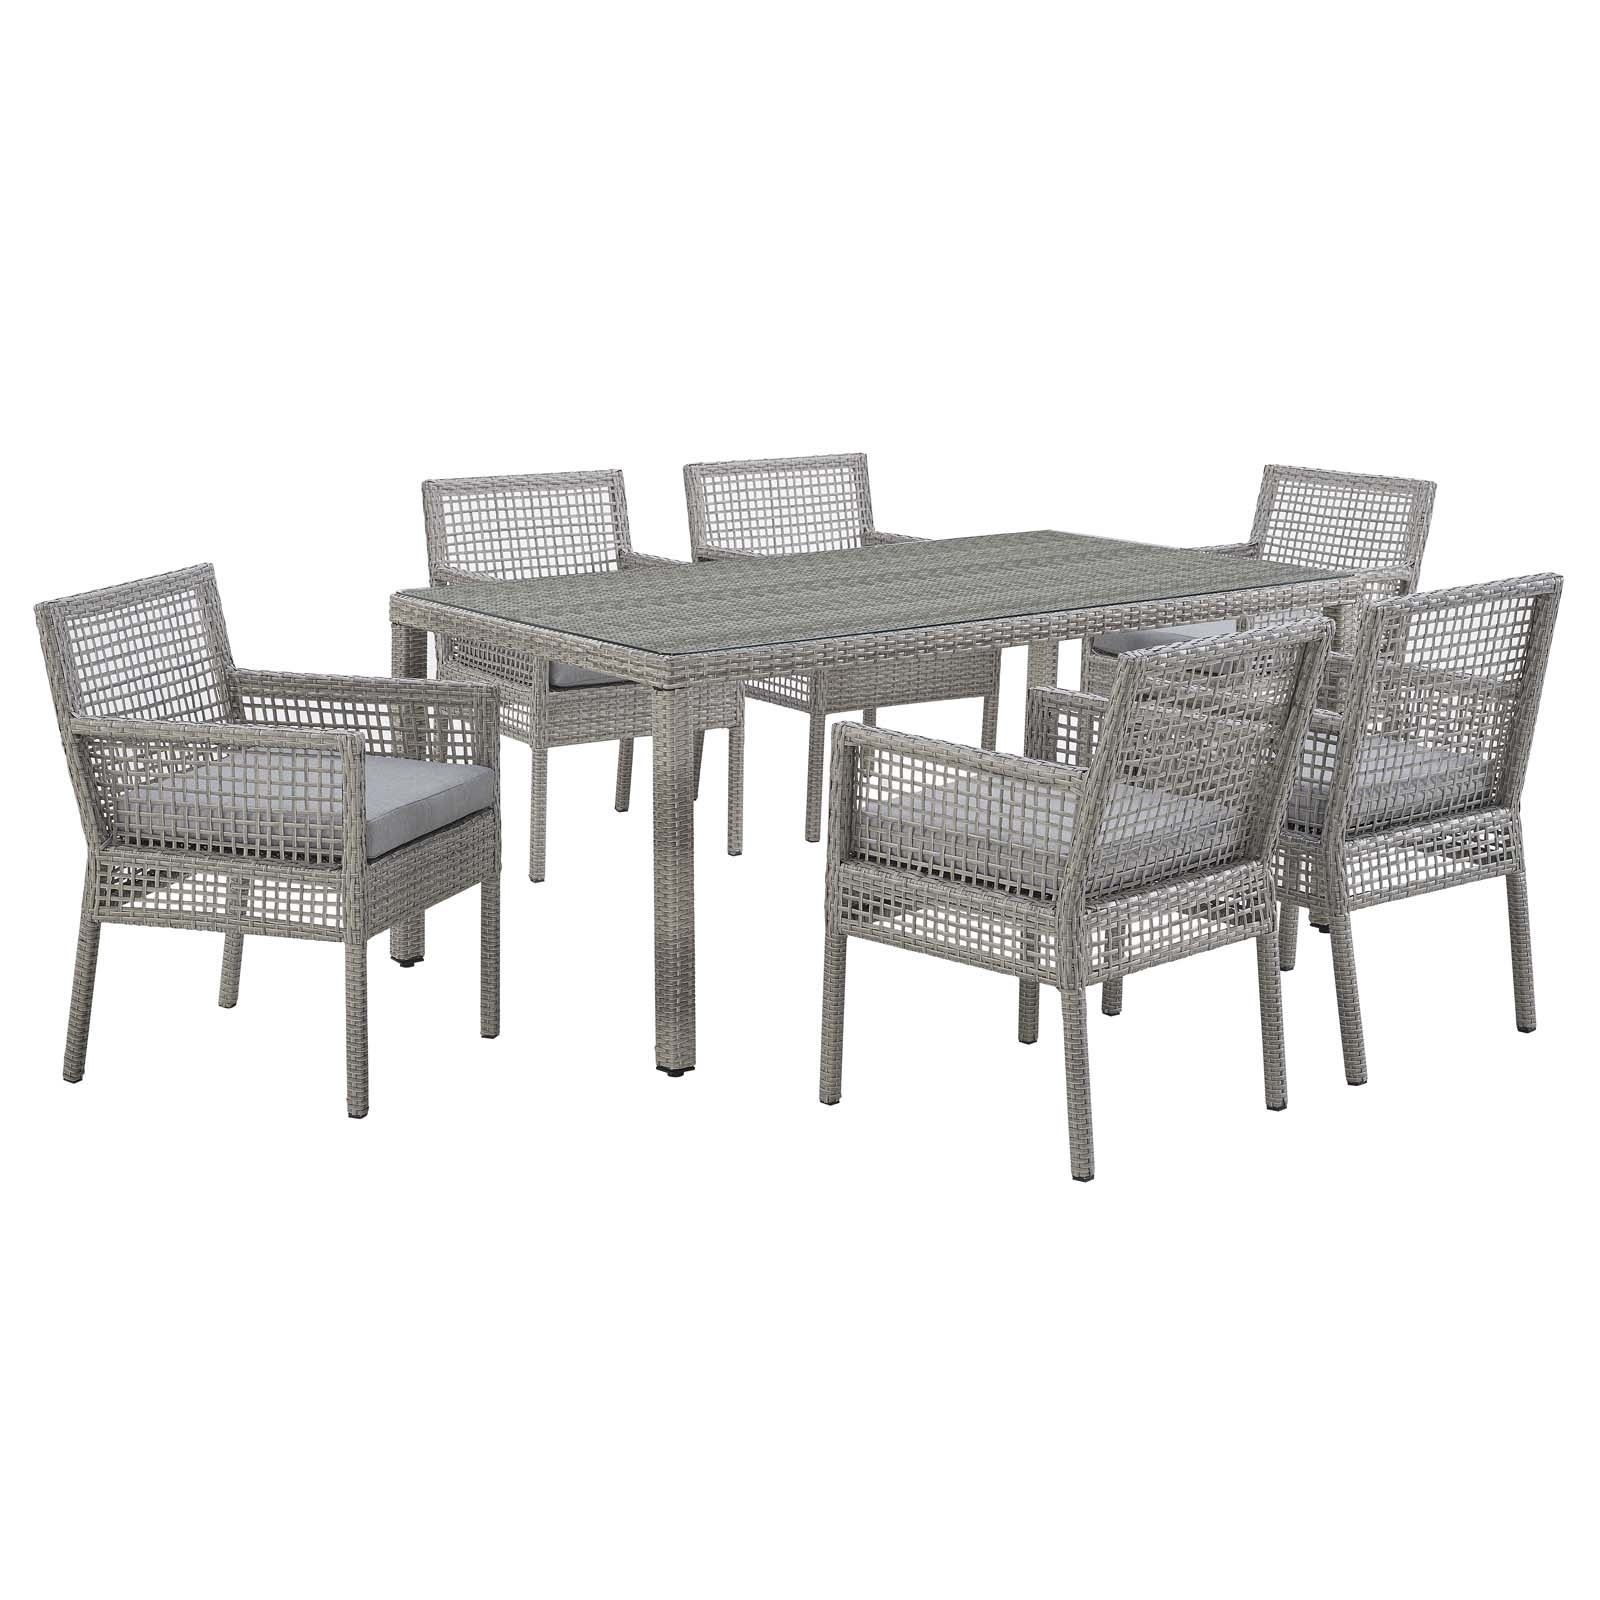 Buy size 7 piece sets outdoor dining sets online at overstock our best patio furniture deals